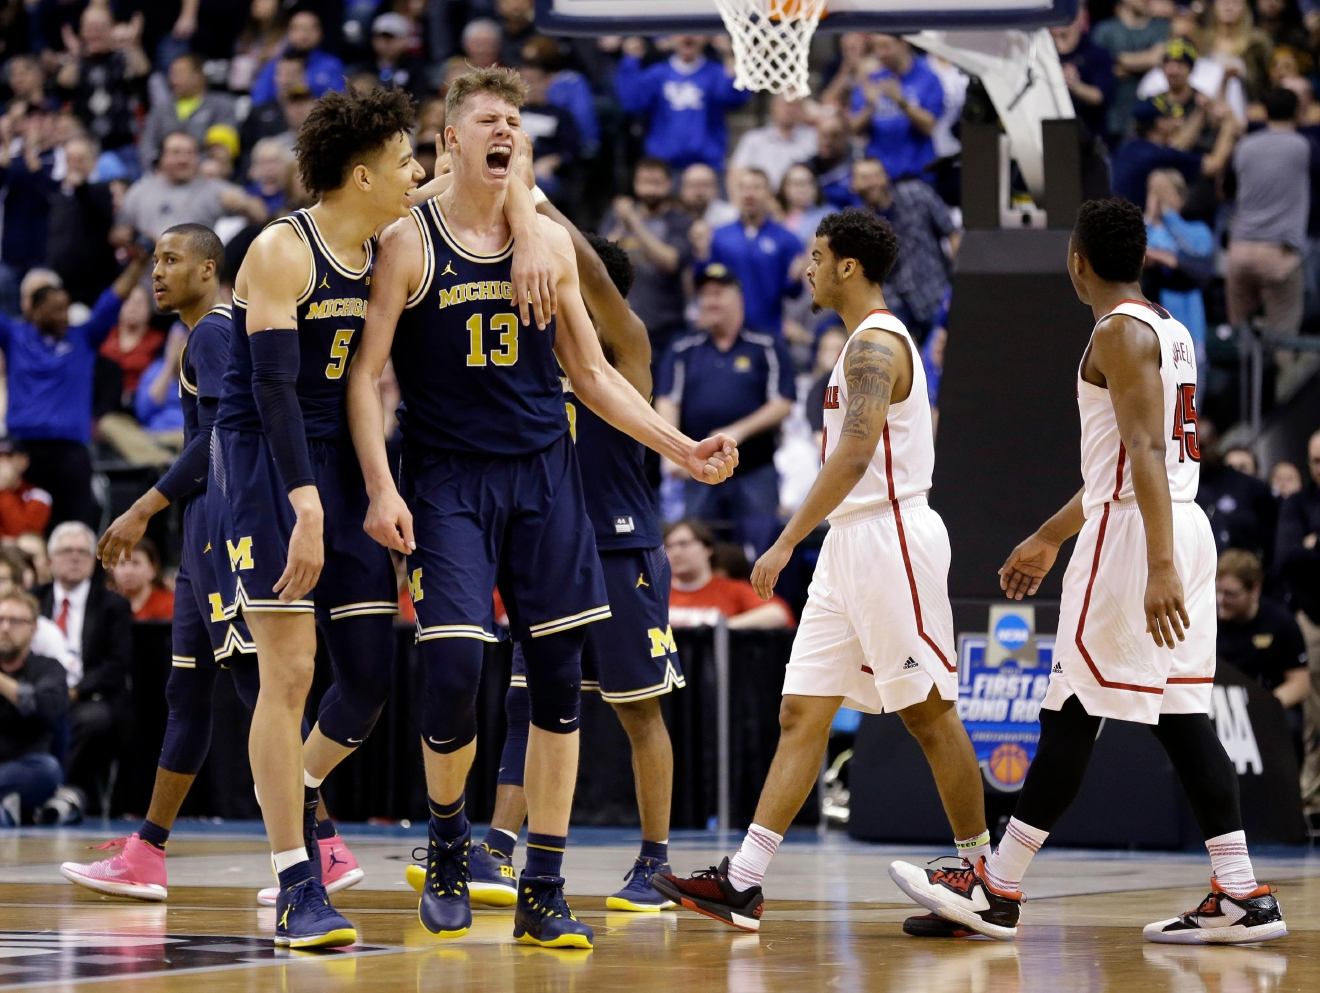 Michigan forwards D.J. Wilson (5) and Moritz Wagner (13) celebrates during the second half of a second-round game against Louisville in the men?s NCAA college basketball tournament in Indianapolis, Sunday, March 19, 2017. Michigan defeated Louisville 73-69. (AP Photo/Michael Conroy)